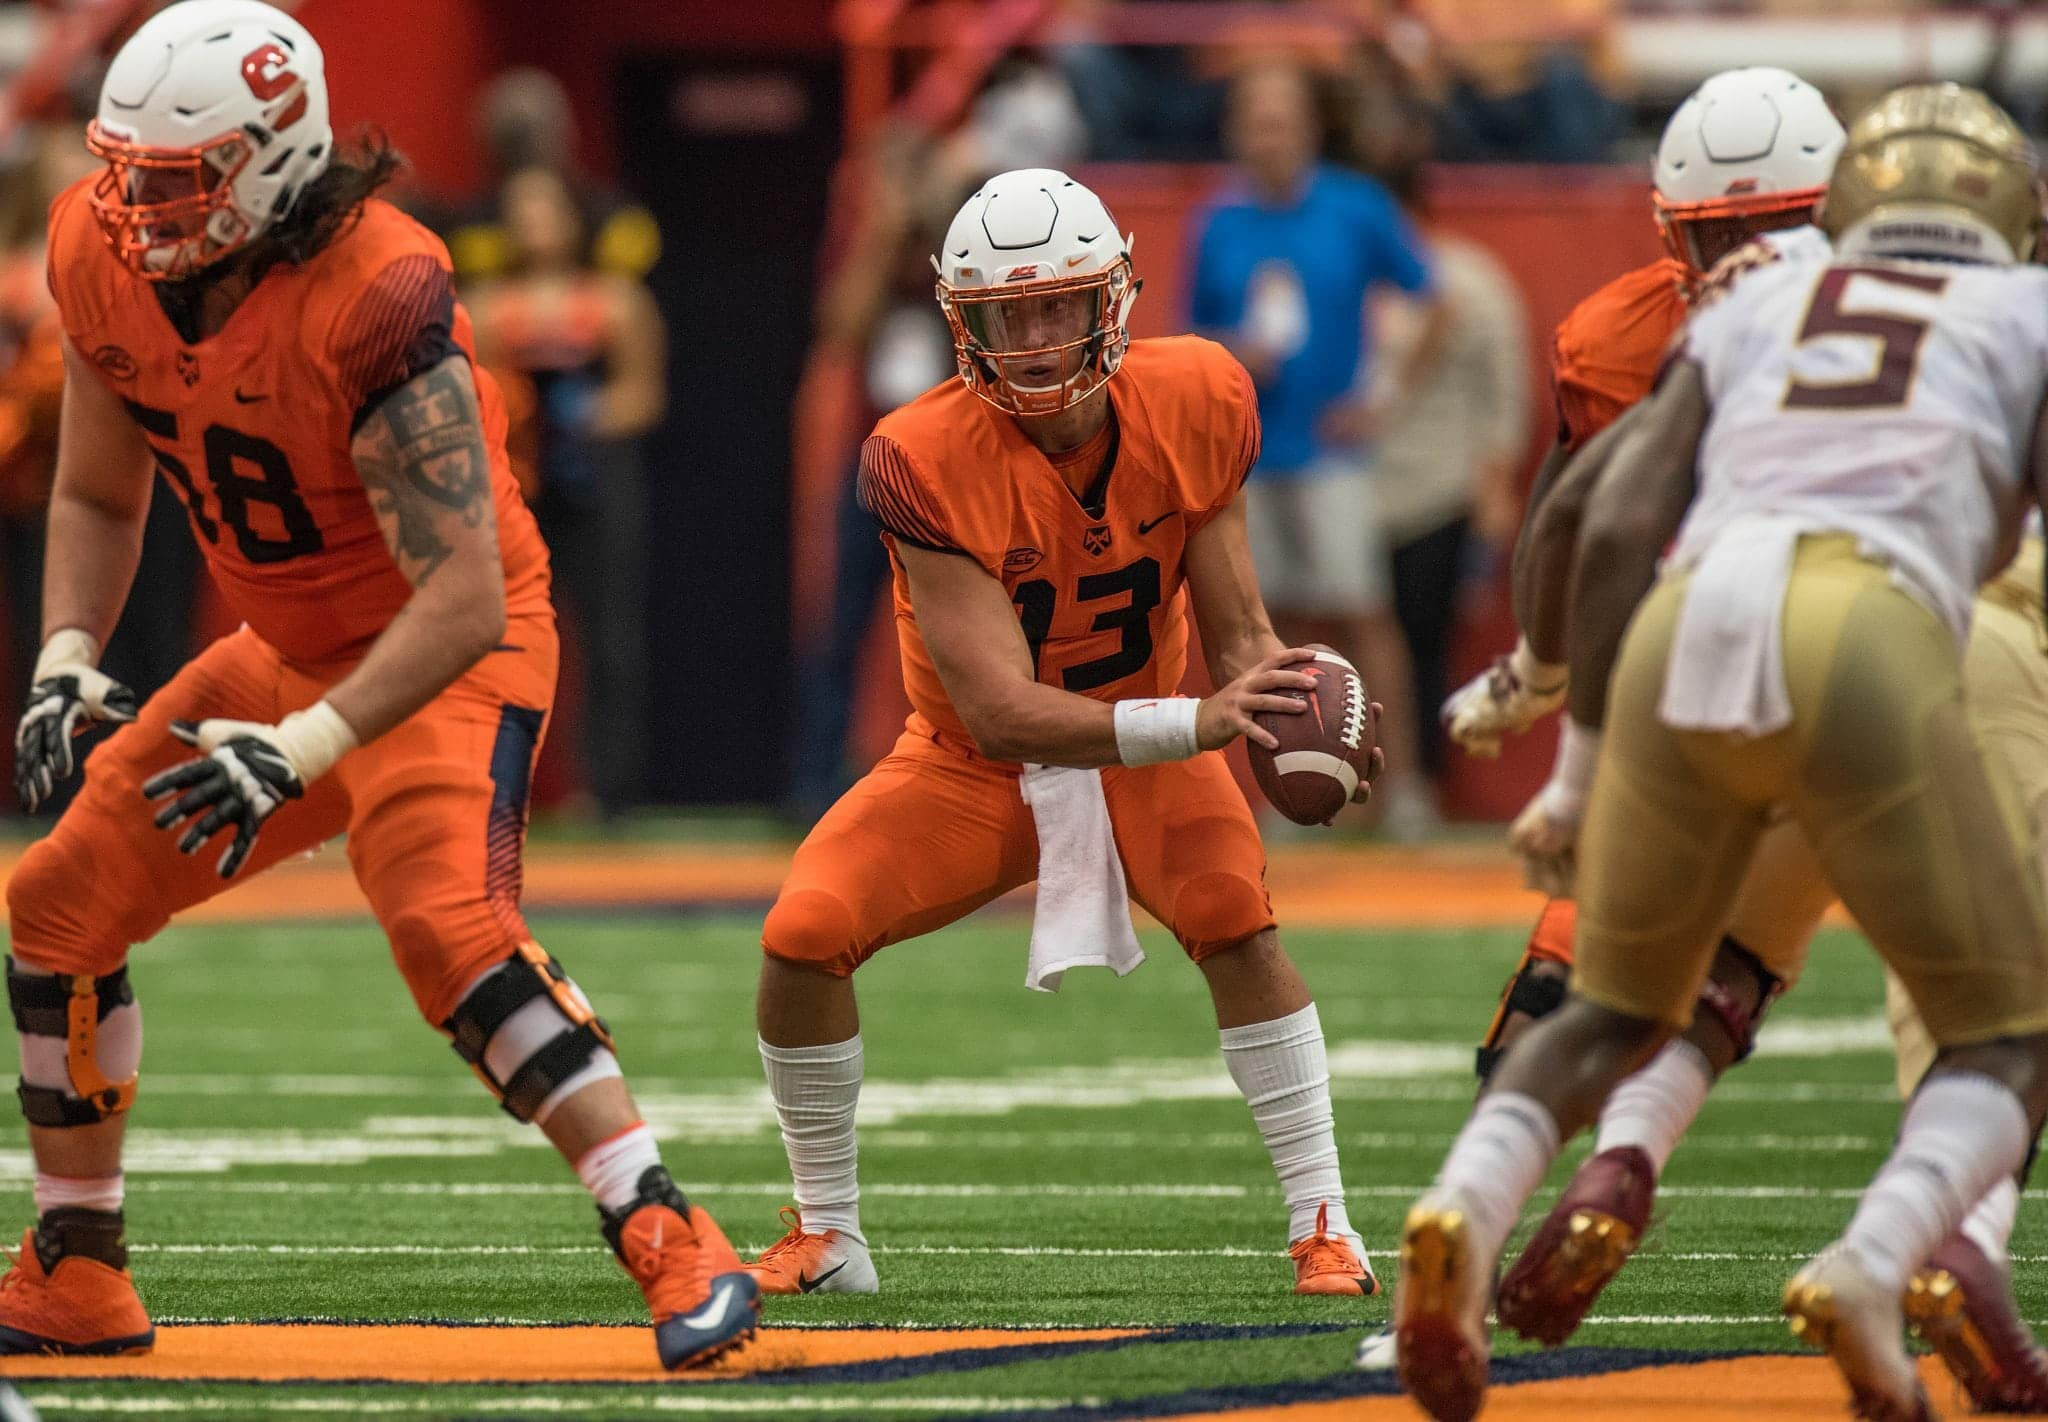 Redshirt freshman QB Tommy DeVito replaced starting quarterback Eric Dungey who left the game near the end of the first half.